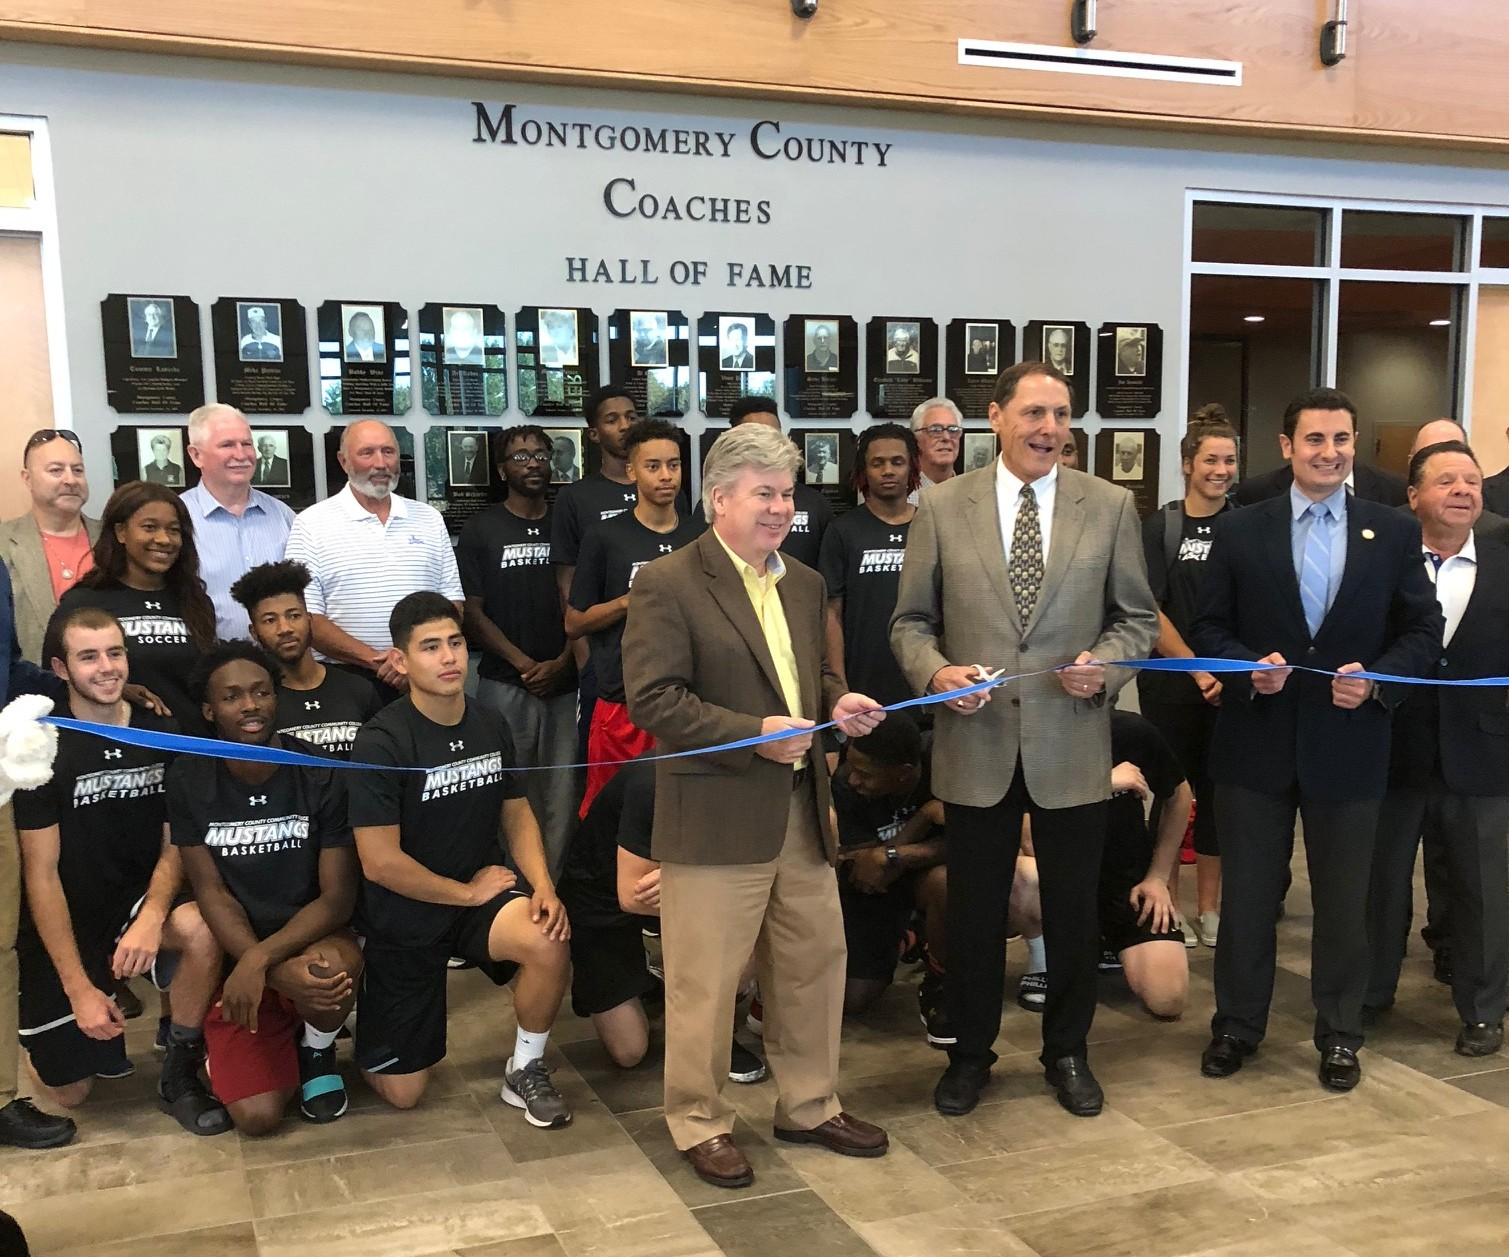 Montgomery County Coaches Hall of Fame inducts five new coaches